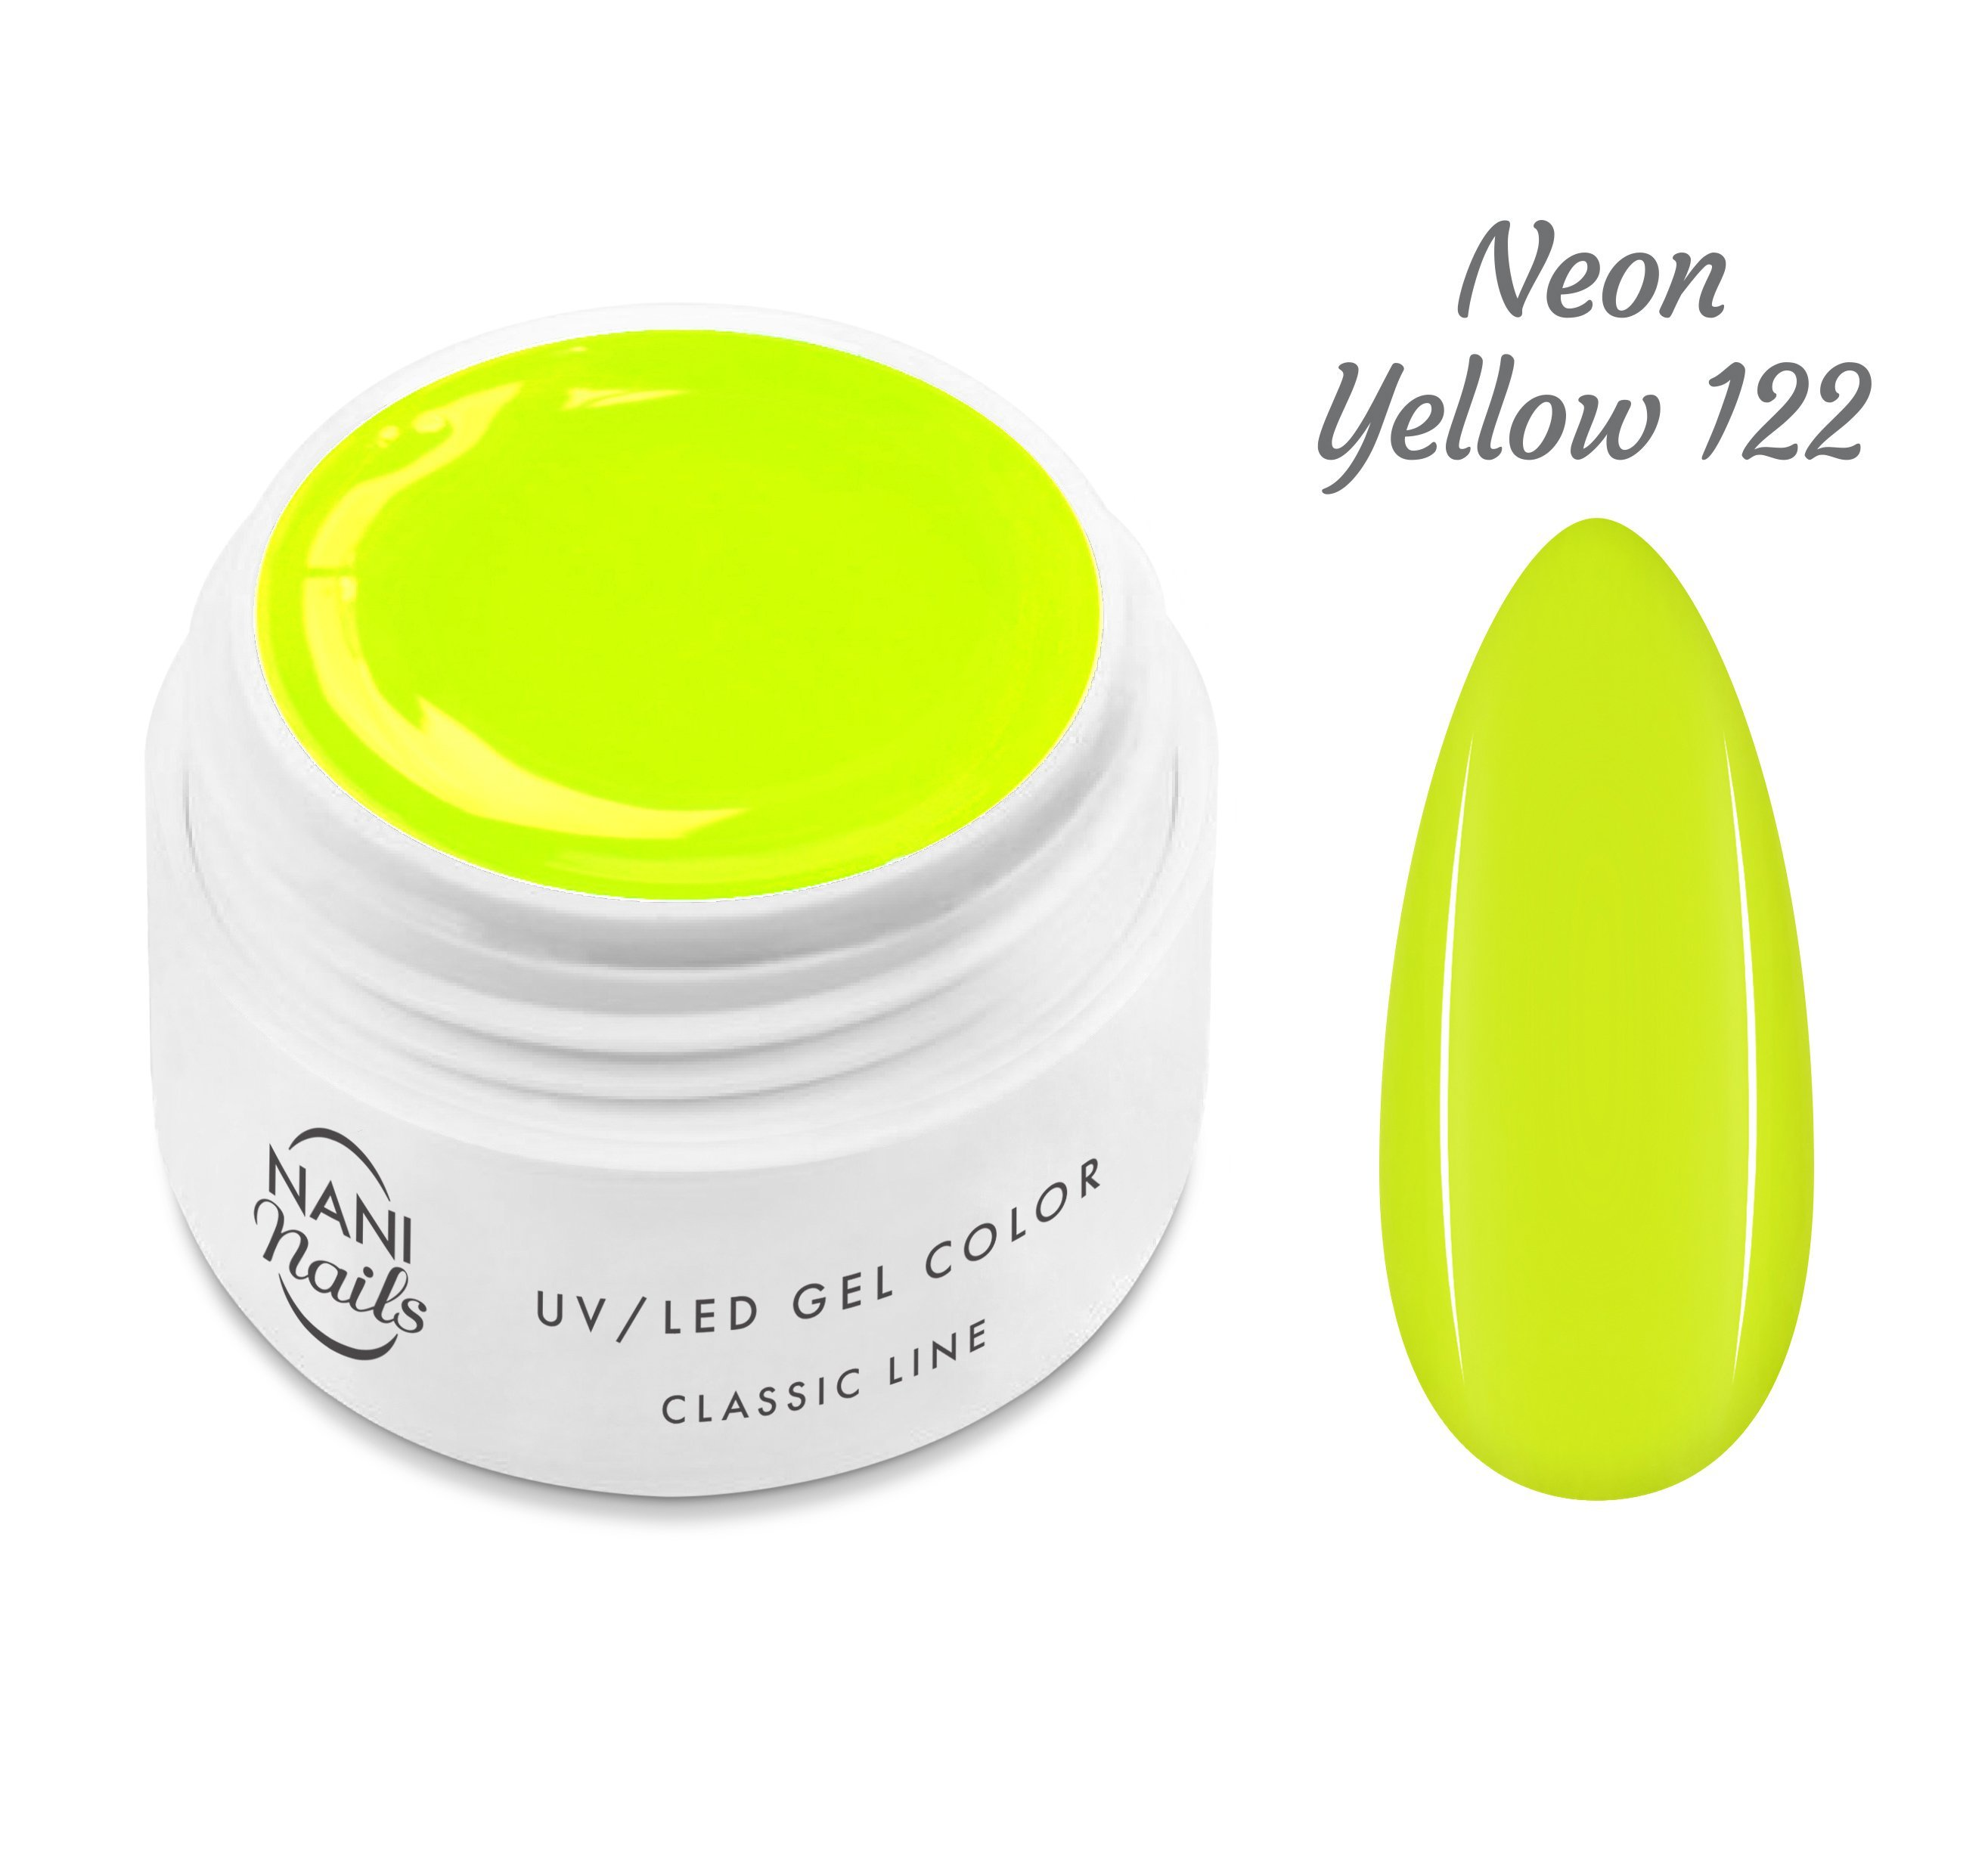 NANI UV gél Classic Neon Line 5 ml - Neon Yellow